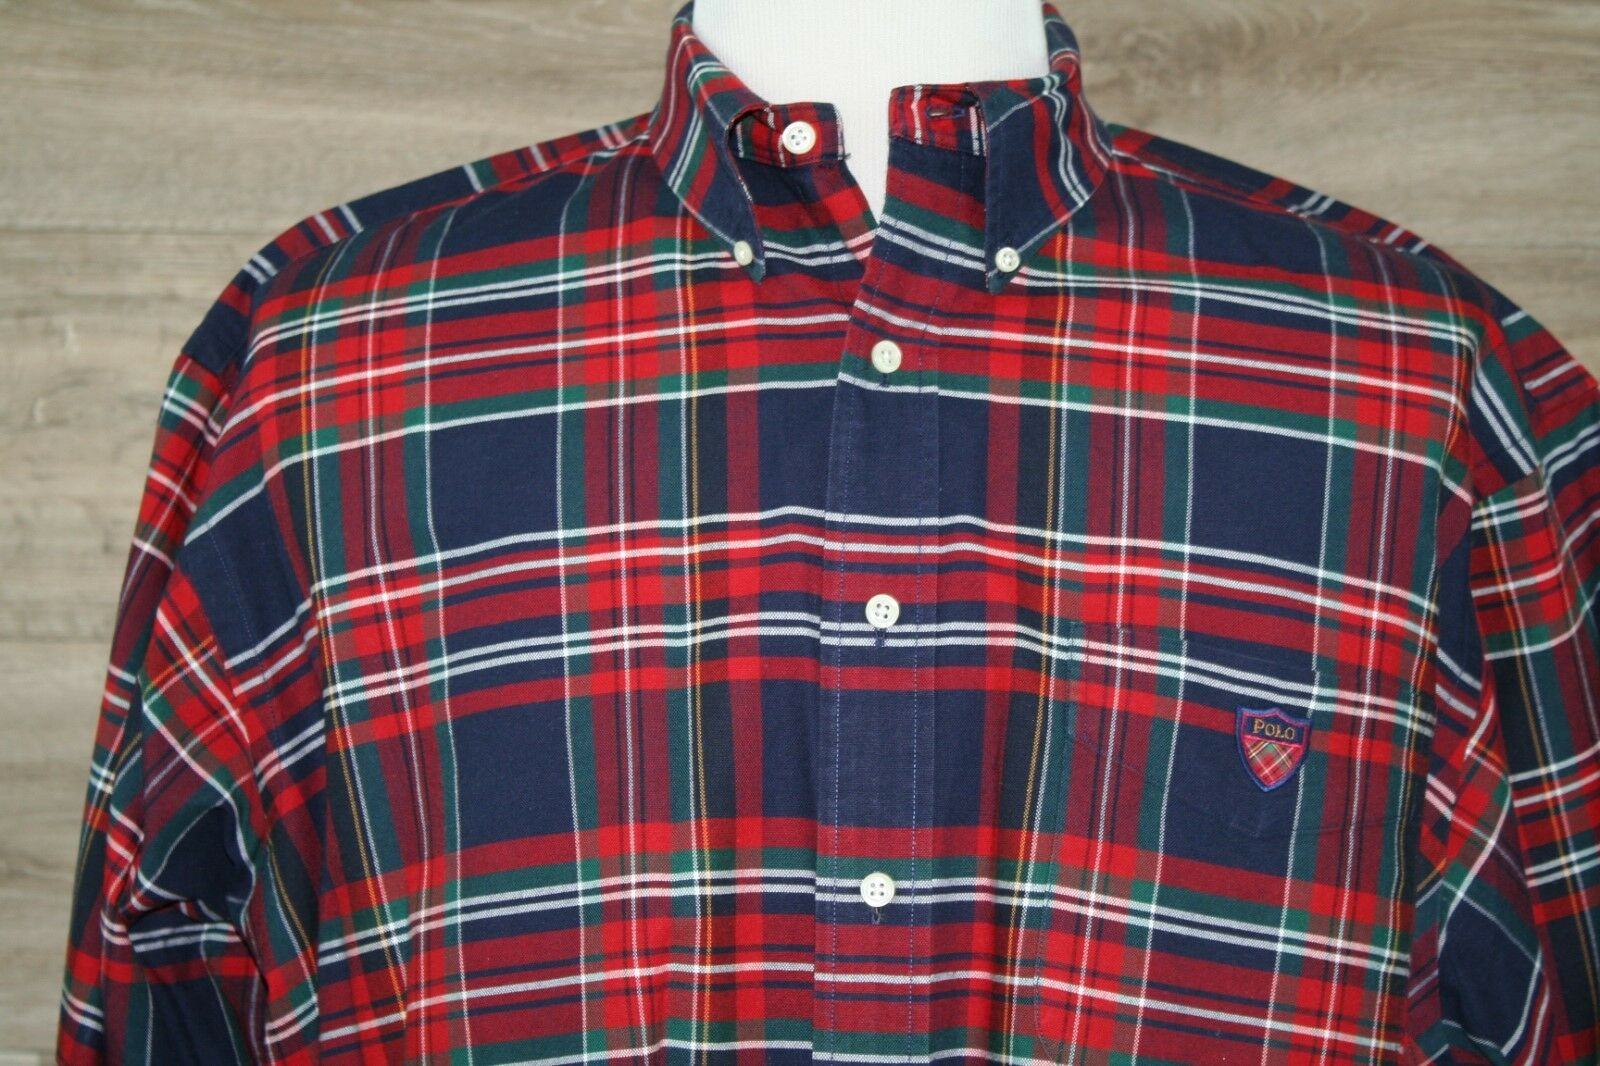 Ralph Lauren MEN'S PLAID LONG SLEEVE BUTTON DOWN SHIRT SIZE L -